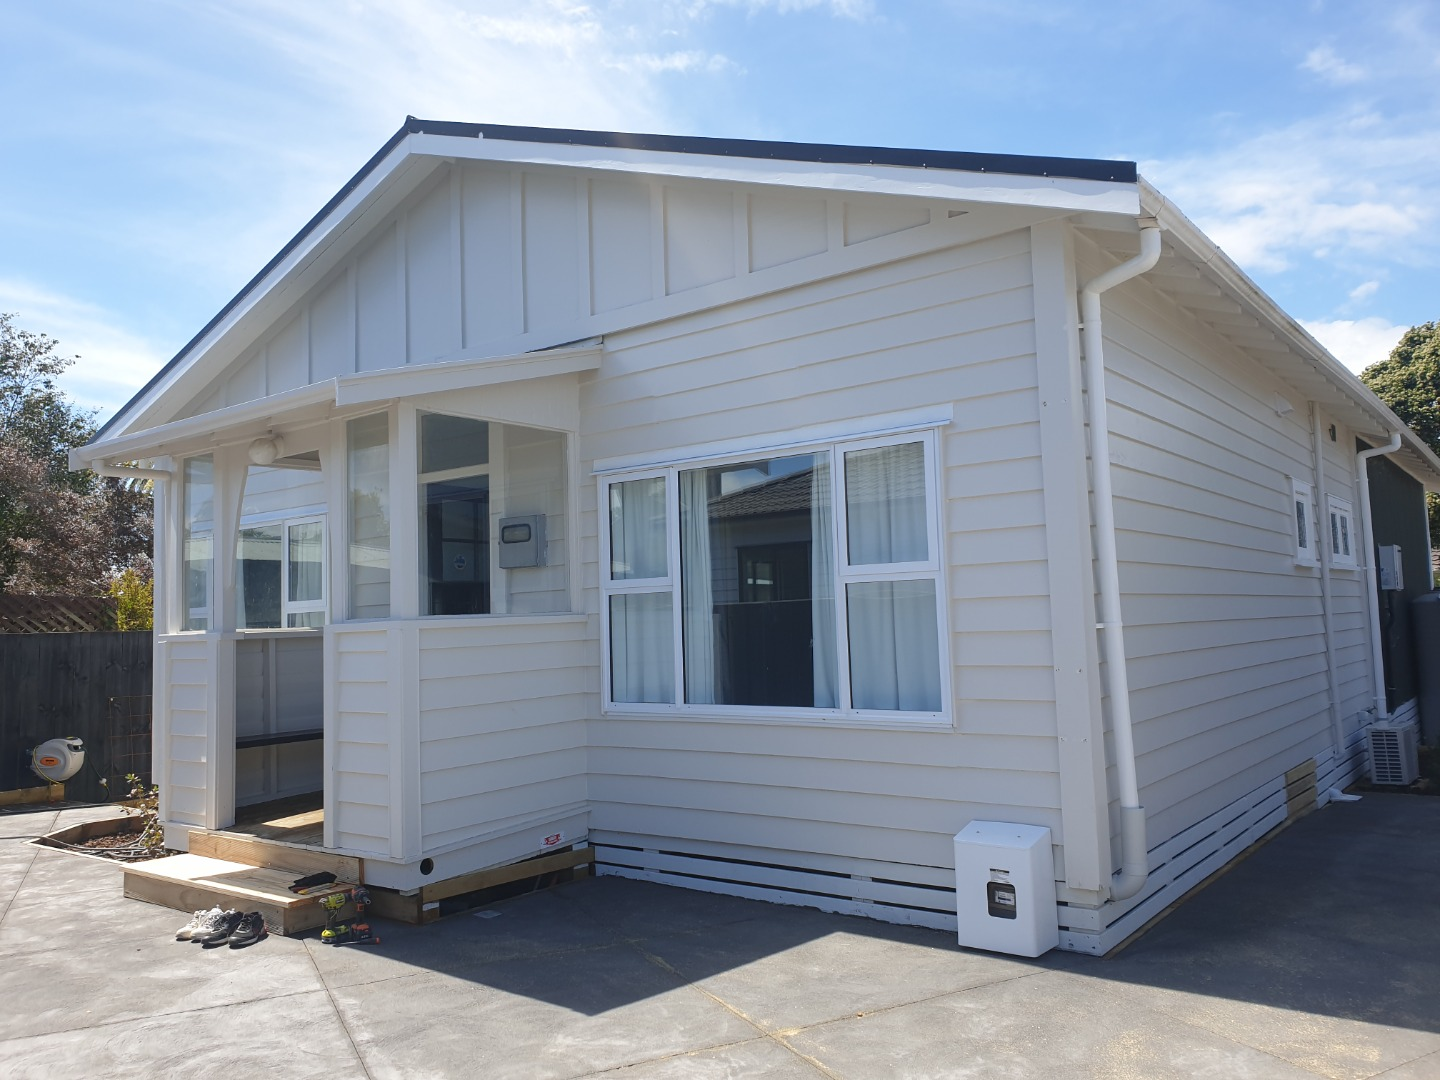 Real Estate For Rent Houses & Apartments : 4 bedroom low maintenance family home, Lower Hutt, Wellington